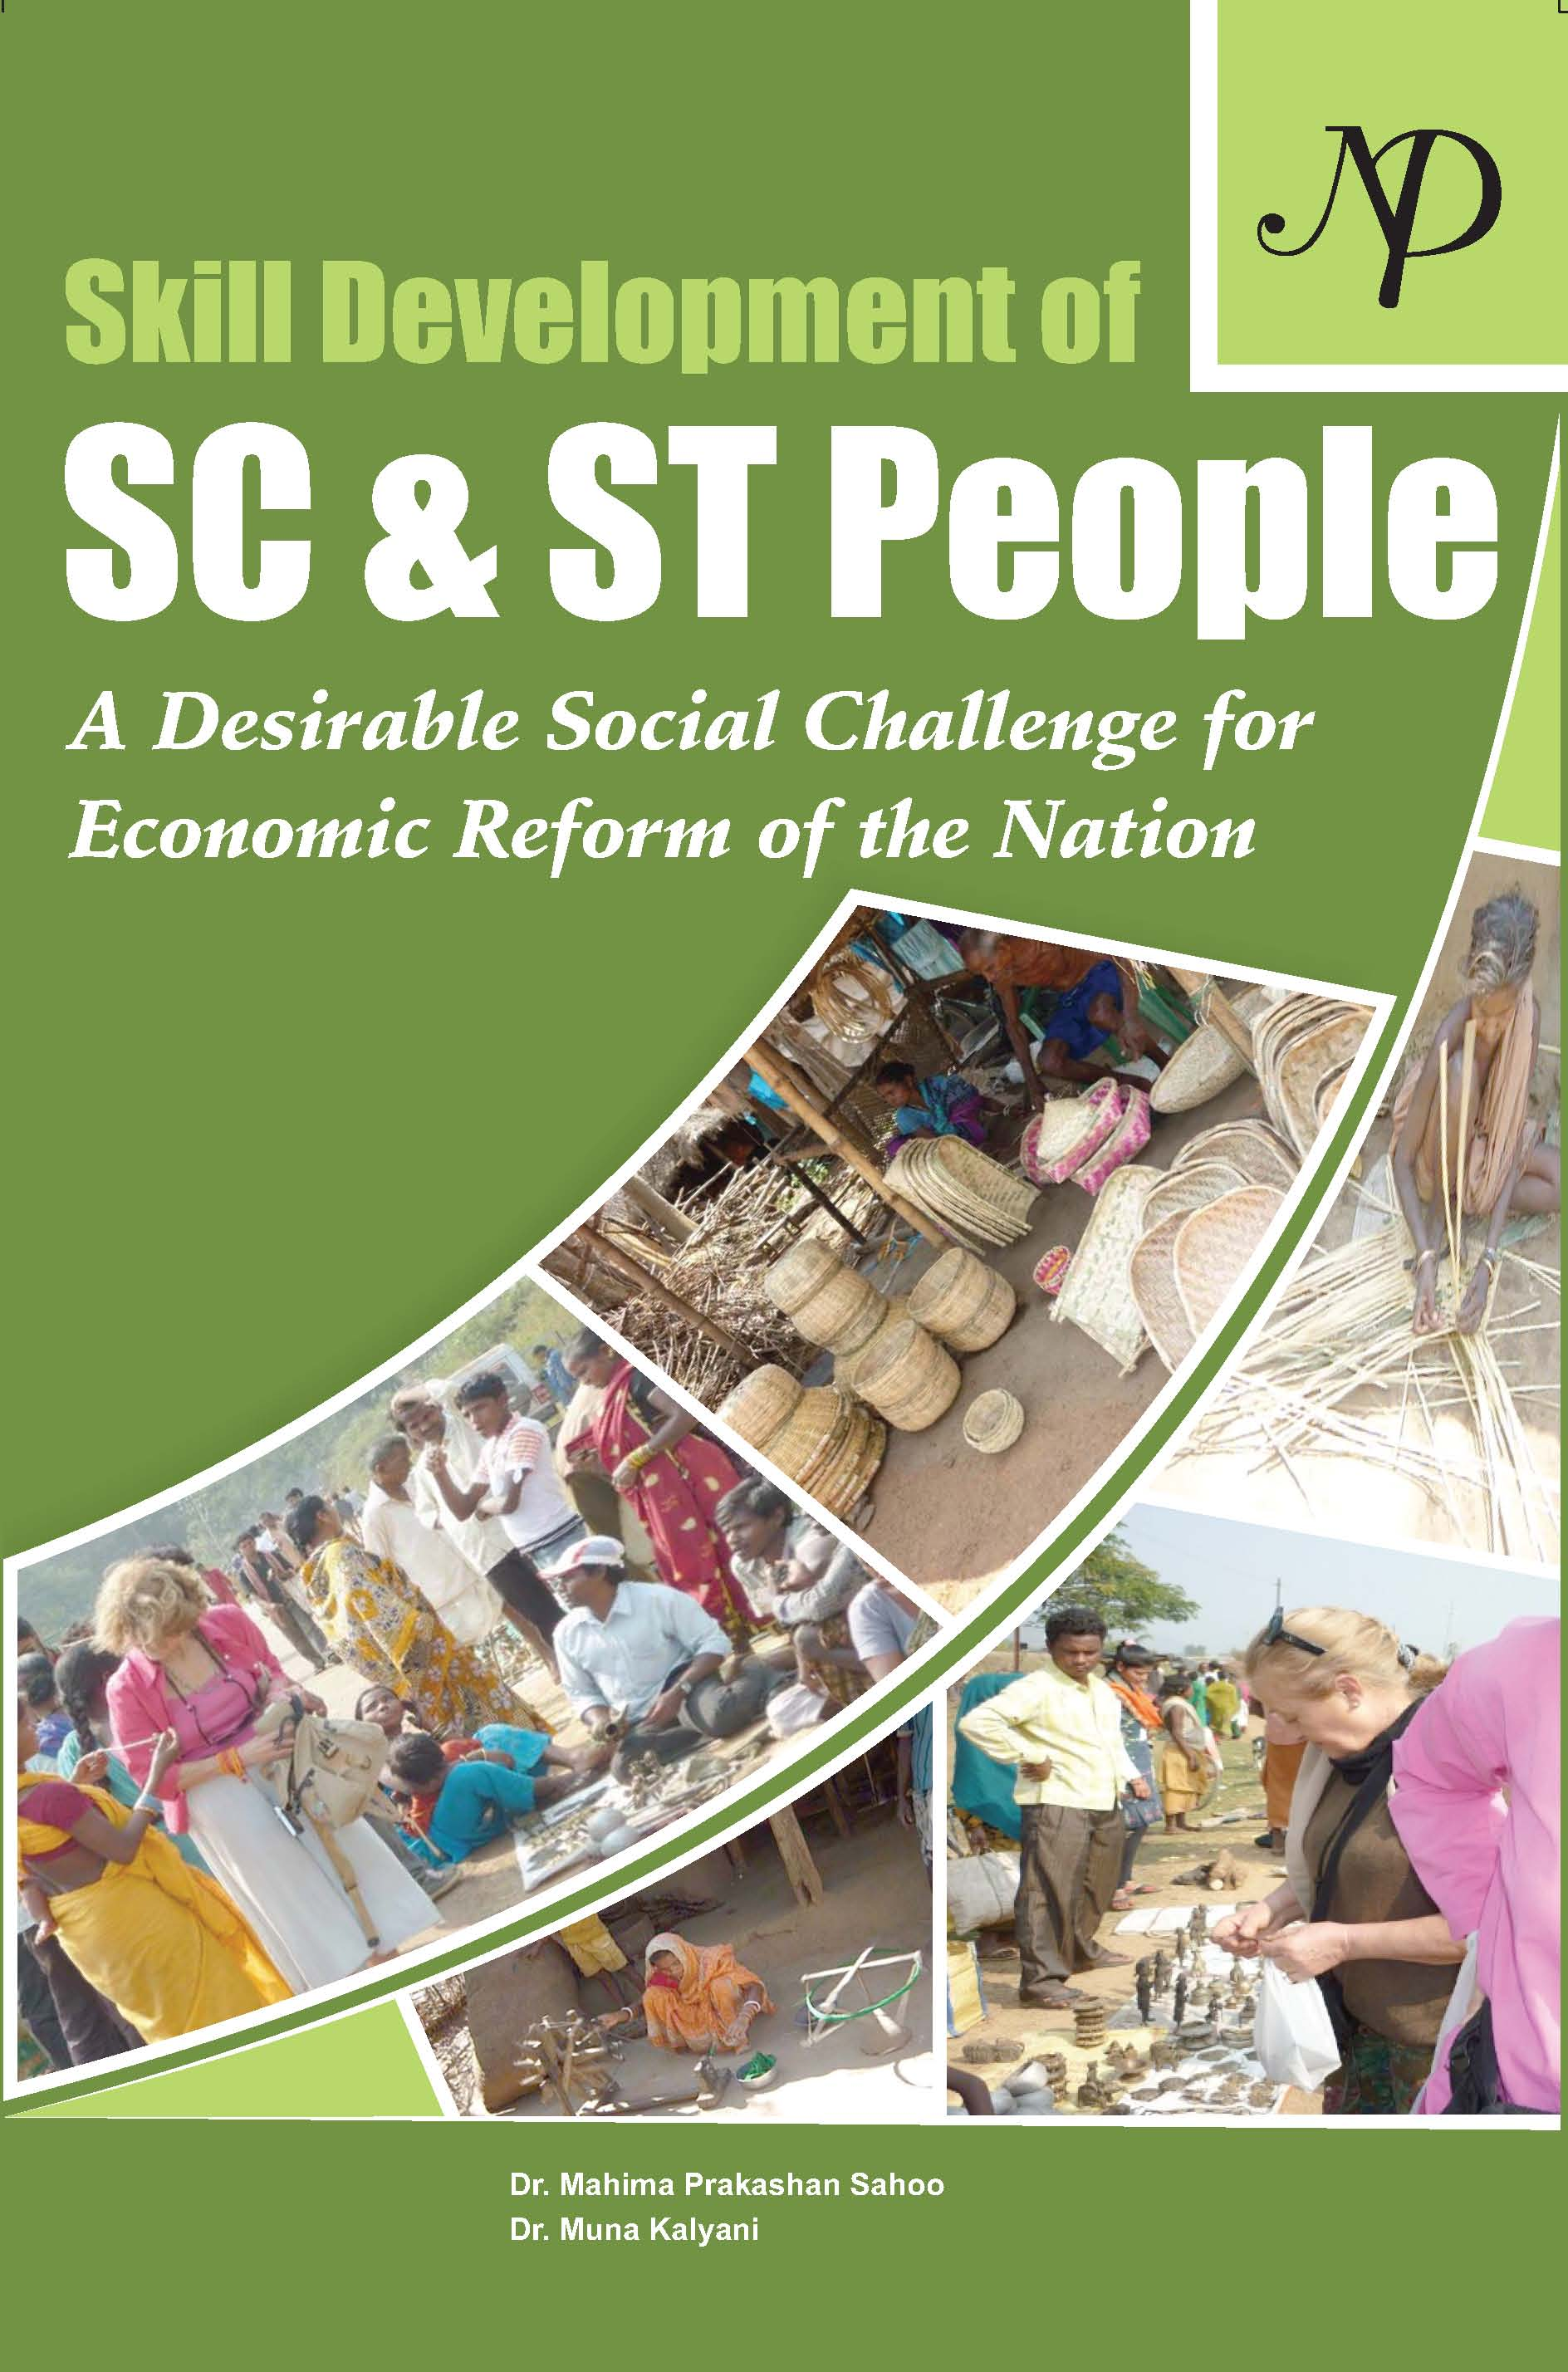 Skill Development of SC & ST People A Desirable Social Challenge for Economic Reform of the Nation